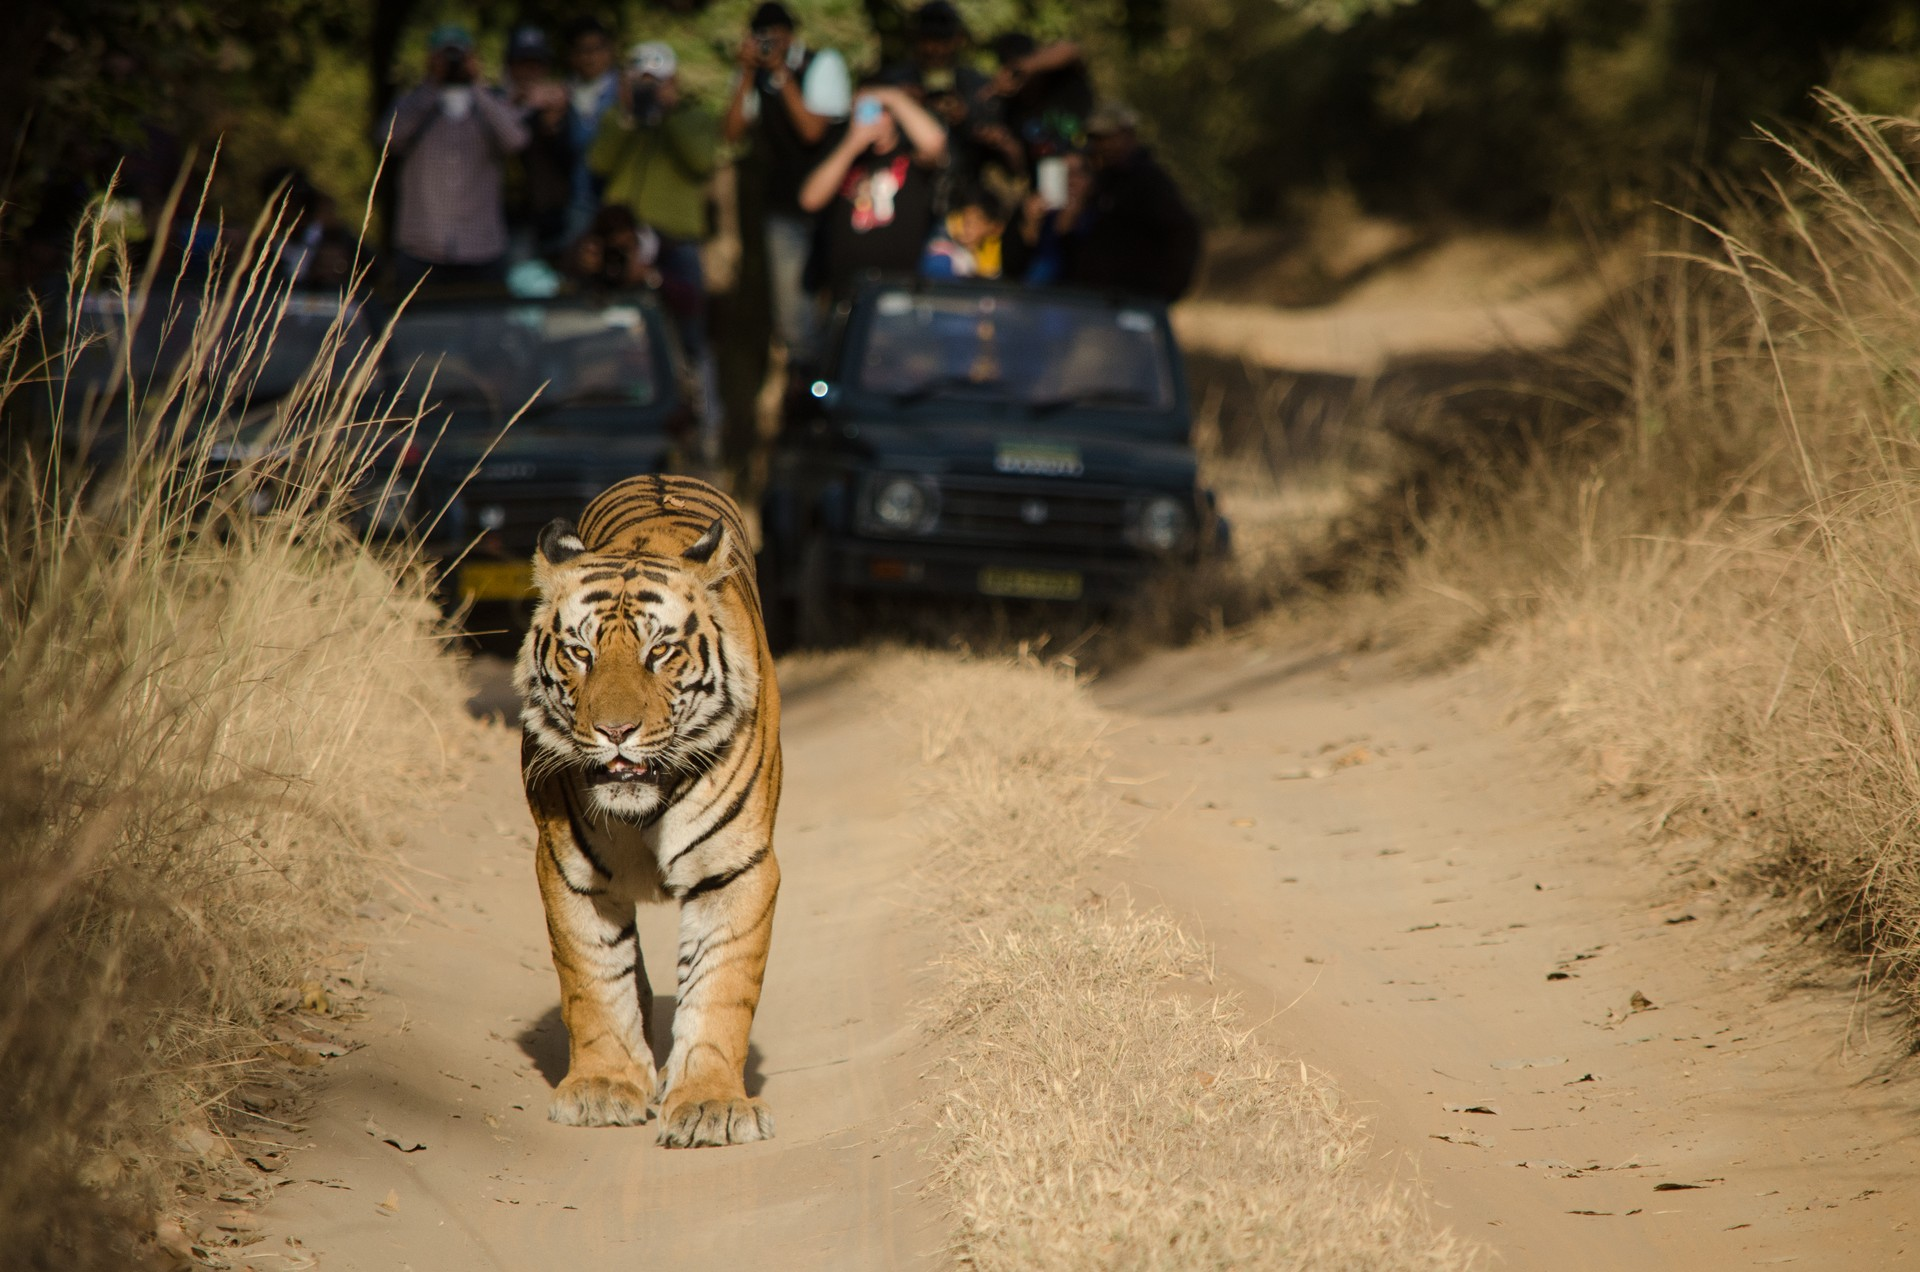 Male tiger in Bandhavgarh National Park, India